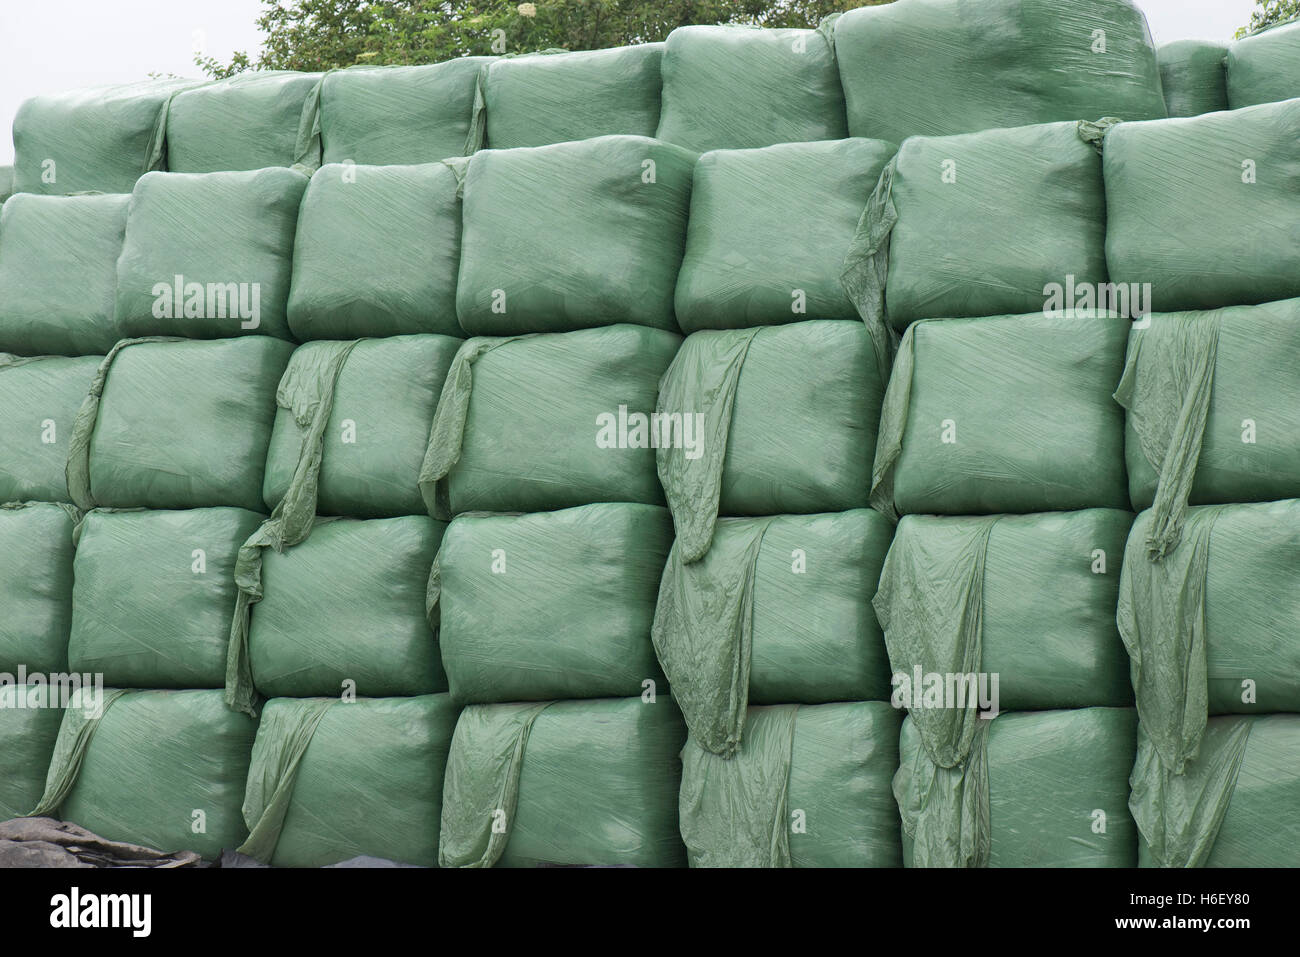 Square plastic wrapped bags of silage for livestock winter feed, Hampshire, June - Stock Image